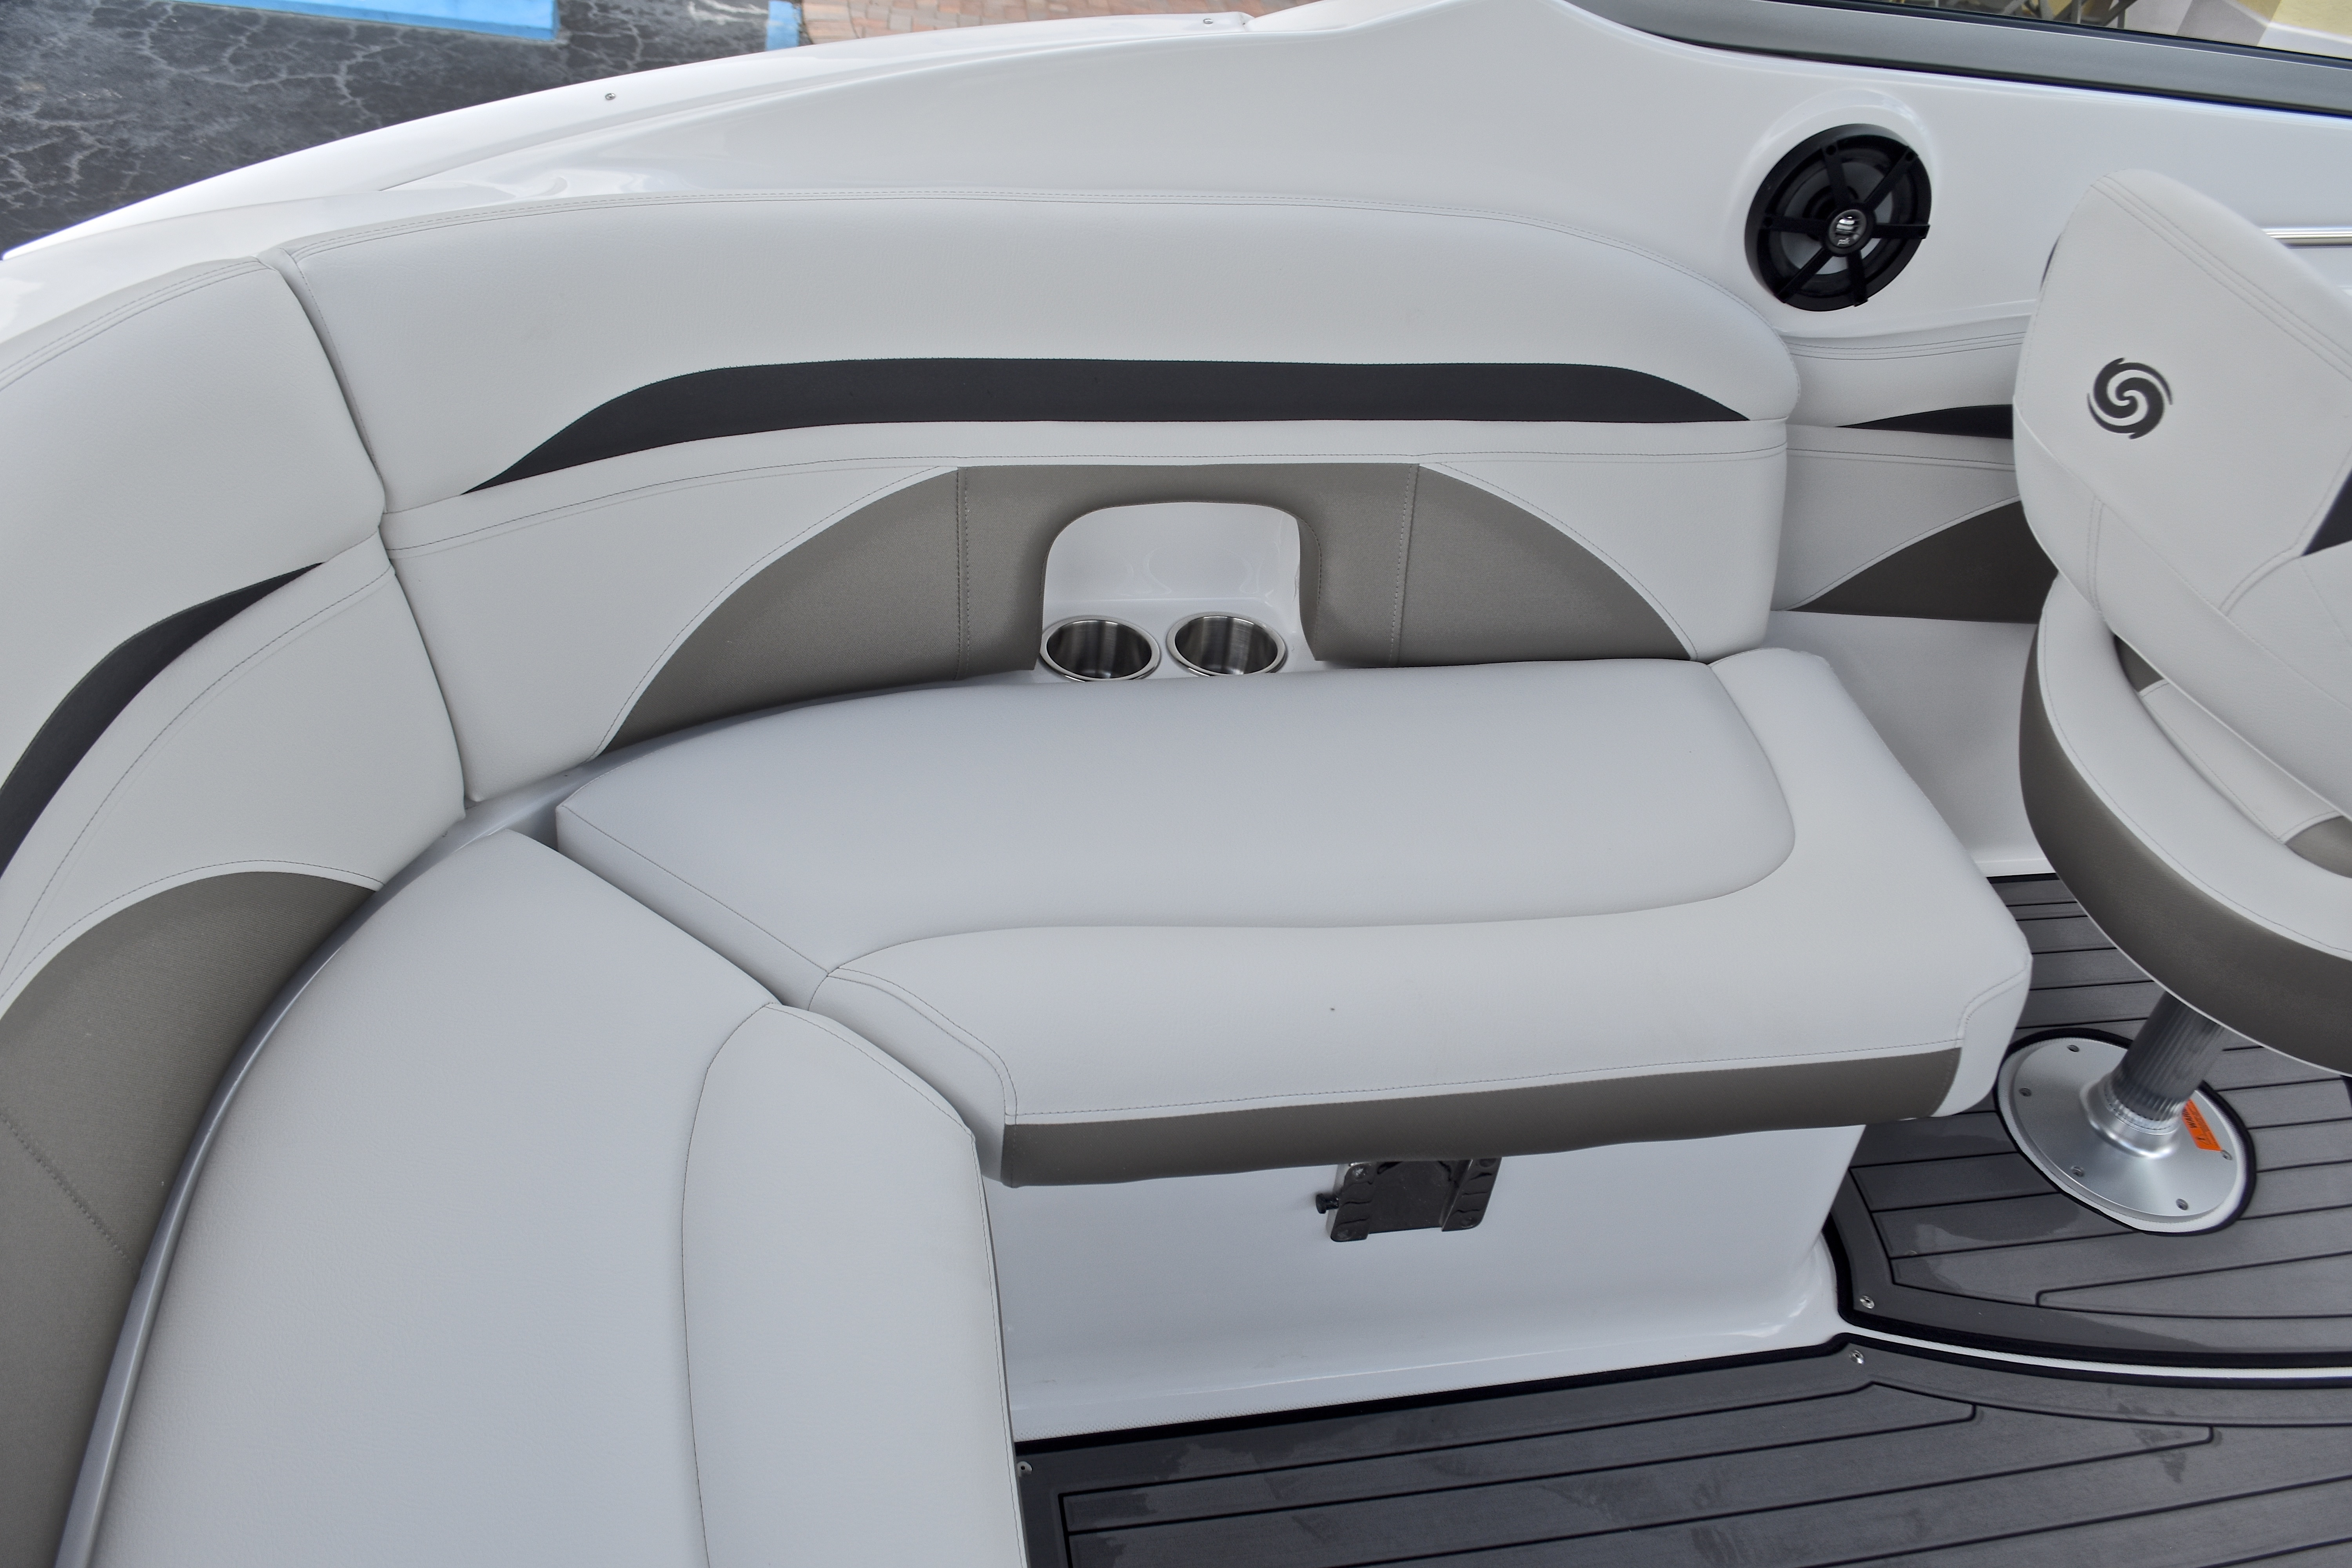 Thumbnail 26 for New 2017 Hurricane SunDeck SD 2400 OB boat for sale in West Palm Beach, FL